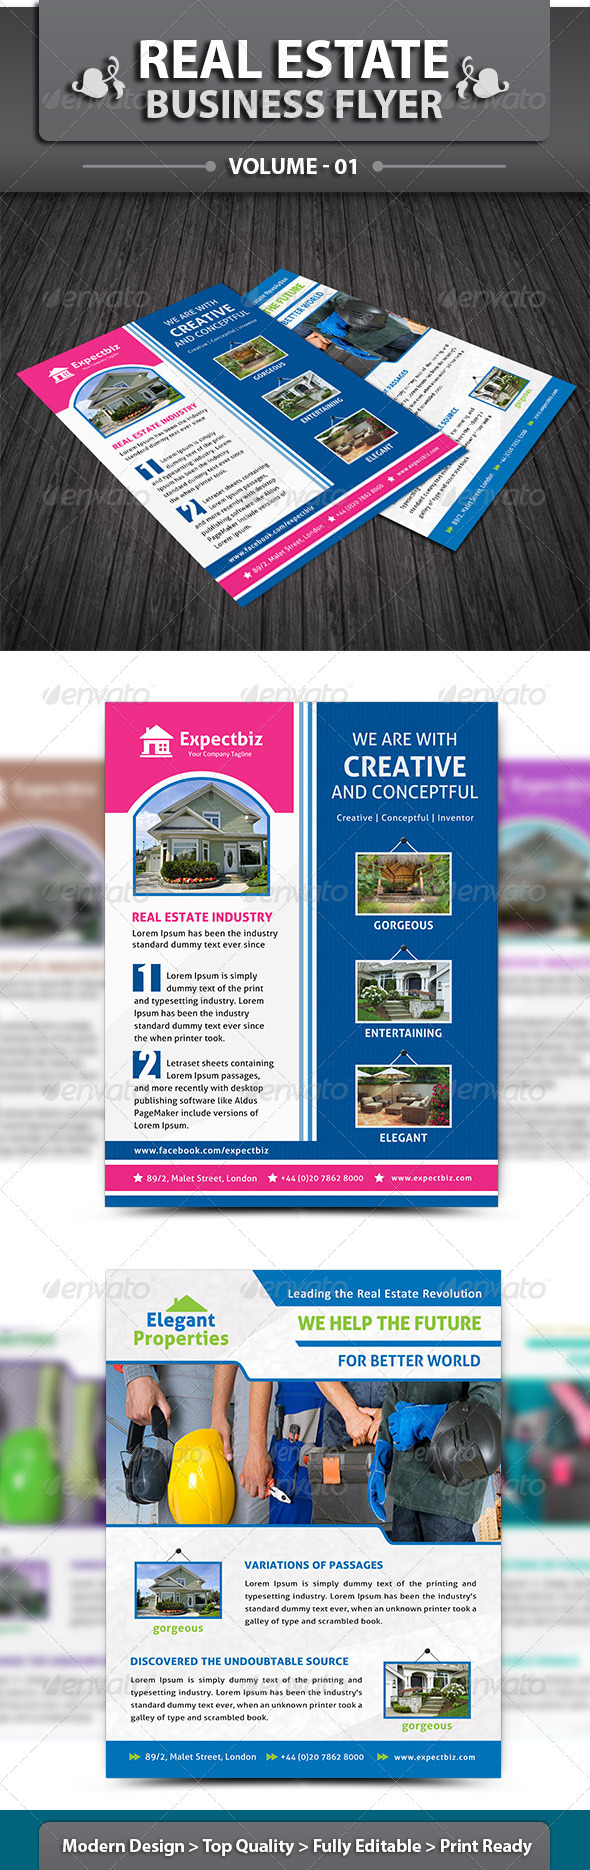 Real Estate Business Flyer | Volume 1